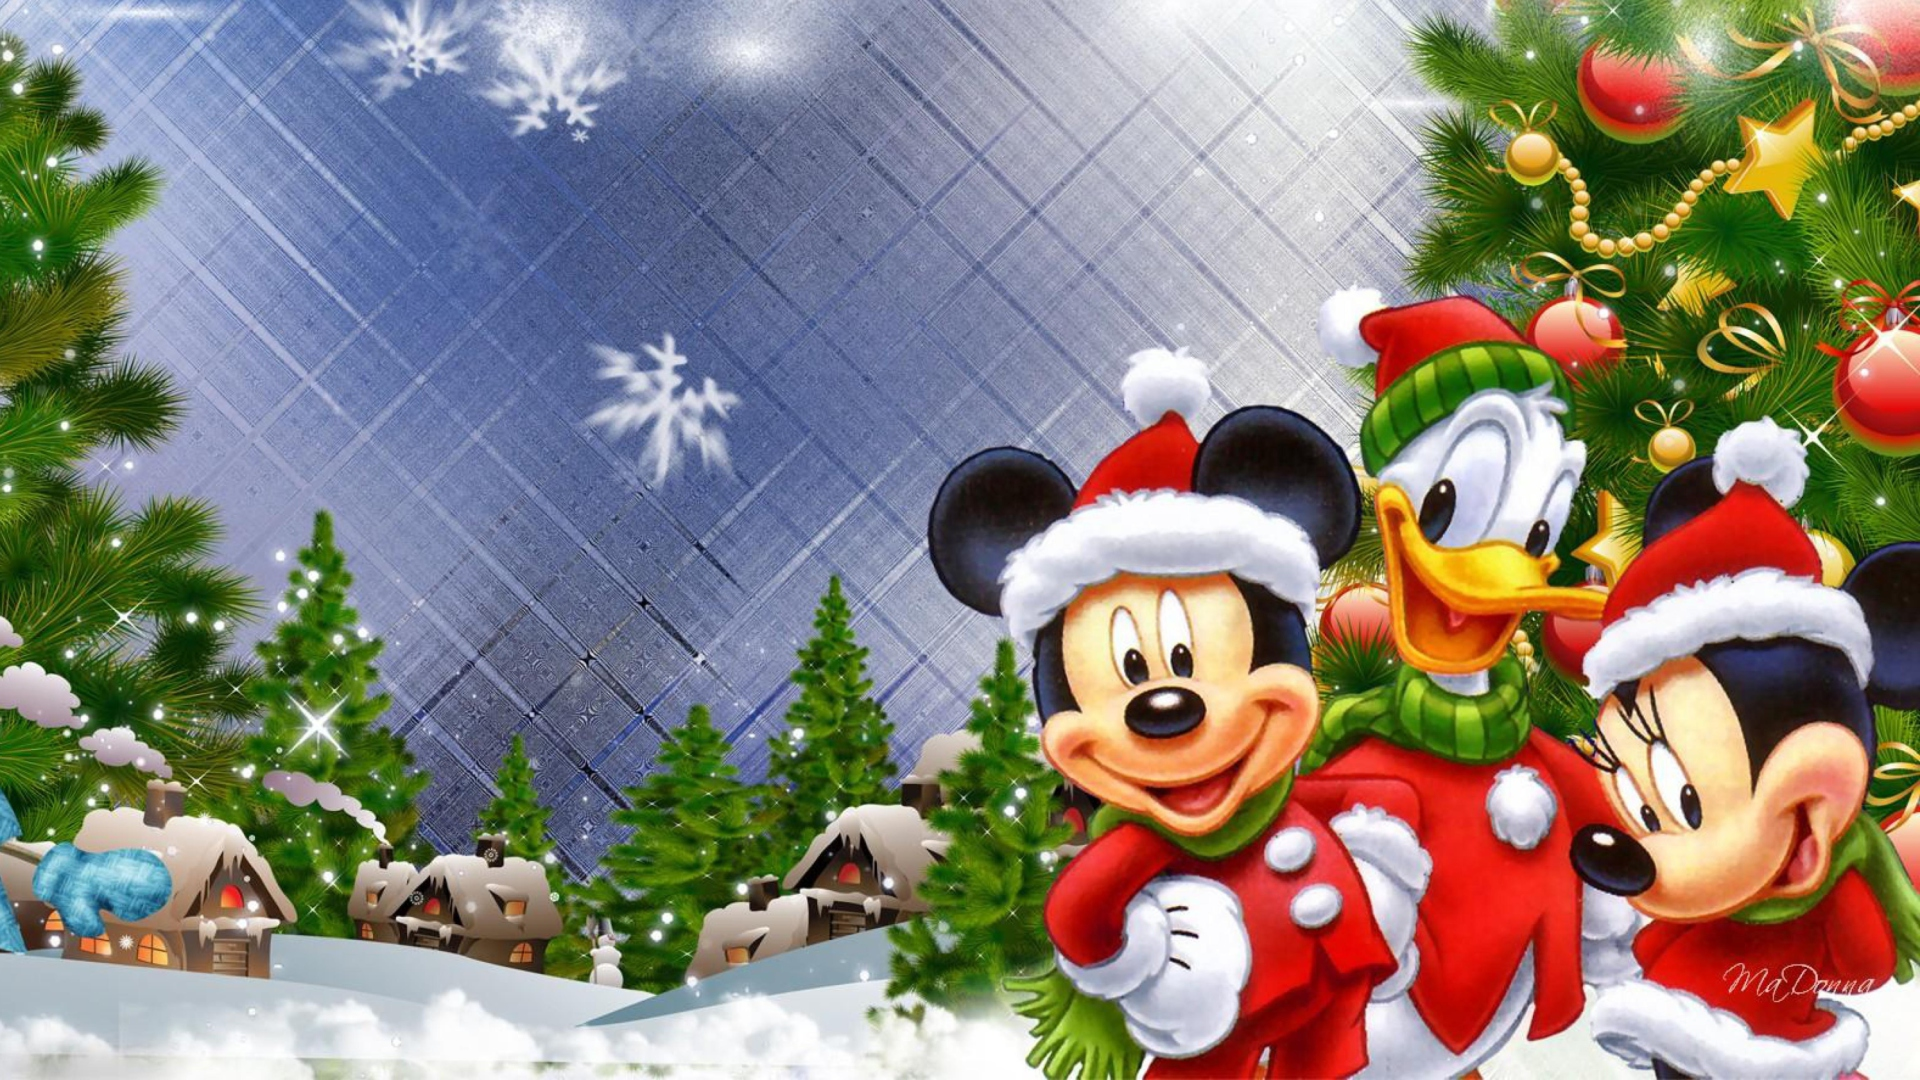 Mickey 39 s christmas wallpaper for desktop 1920x1080 full hd for Sfondi natalizi 1920x1080